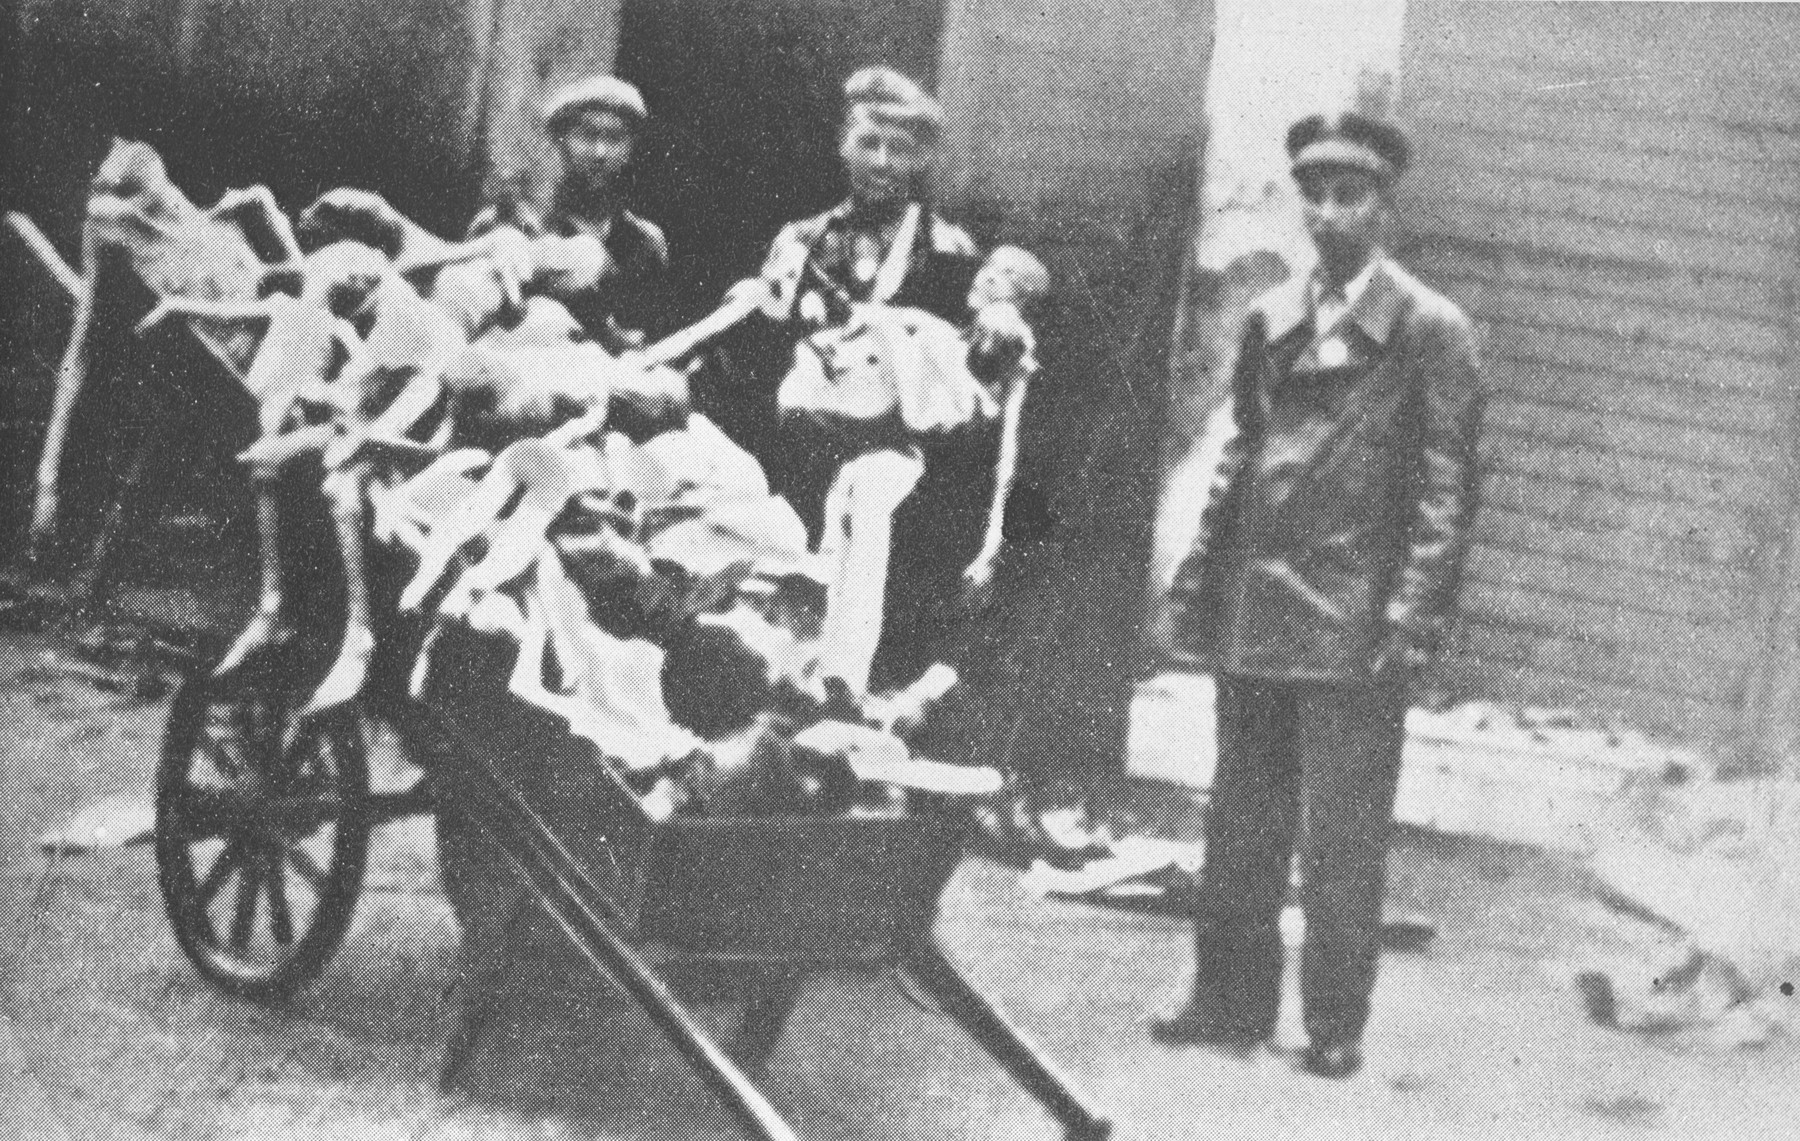 The bodies of emaciated children are piled in a cart before being taken out for burial.